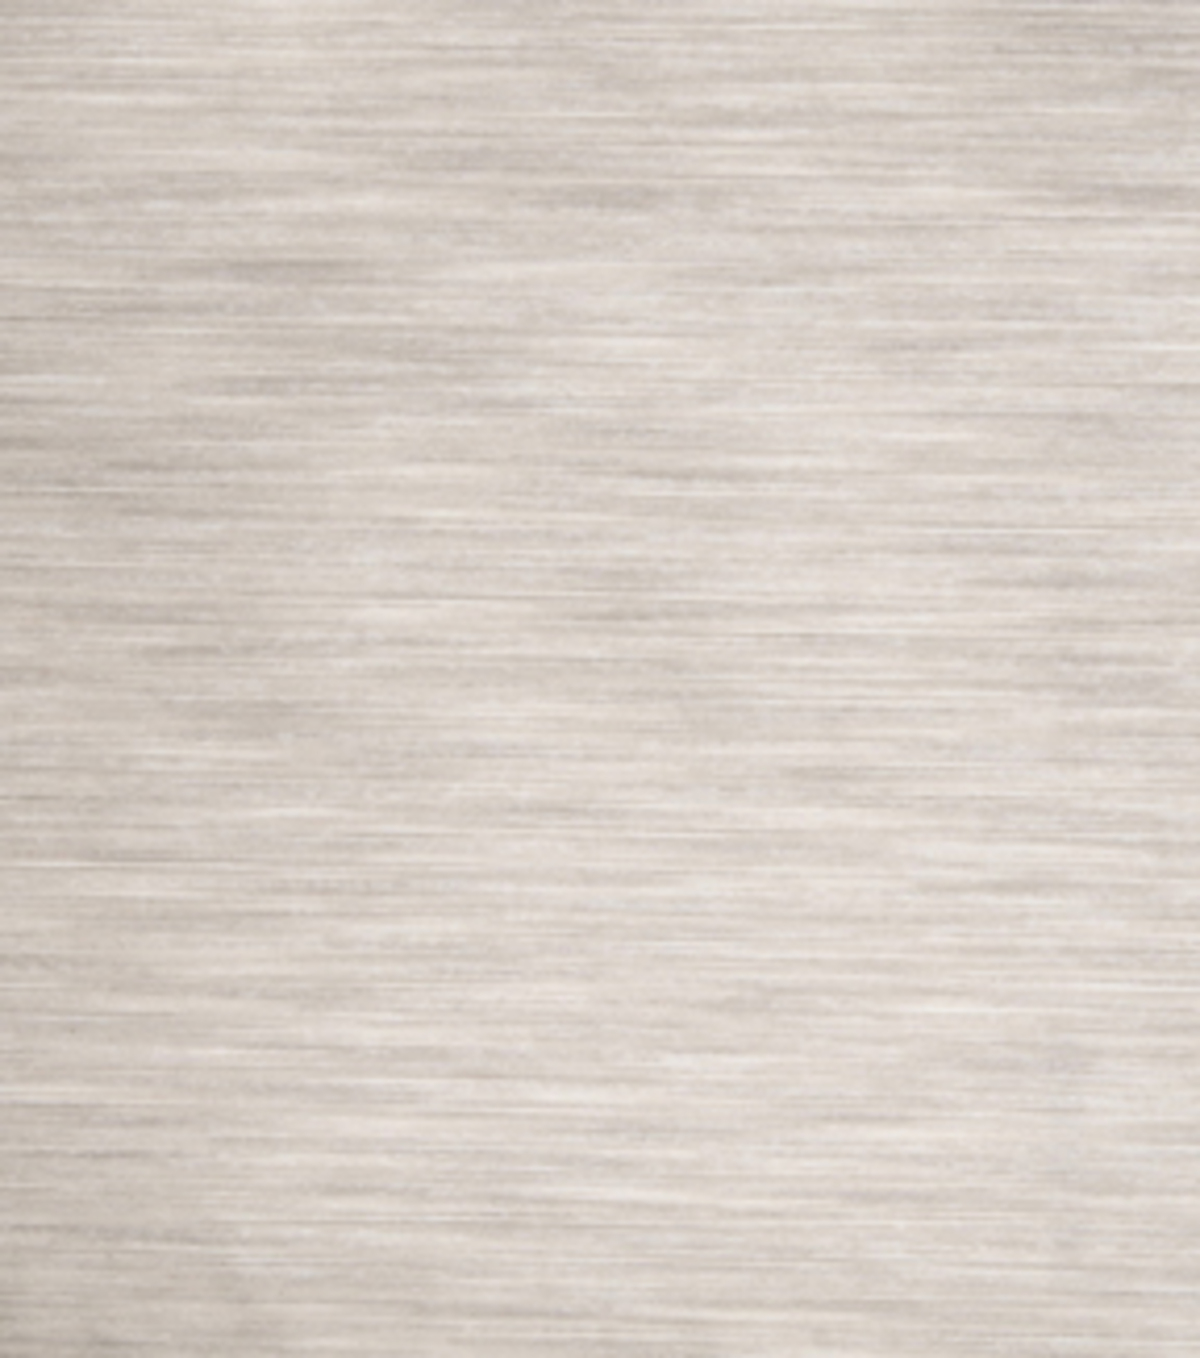 Home Decor 8\u0022x8\u0022 Fabric Swatch--Signature Series Shelburne-Natural